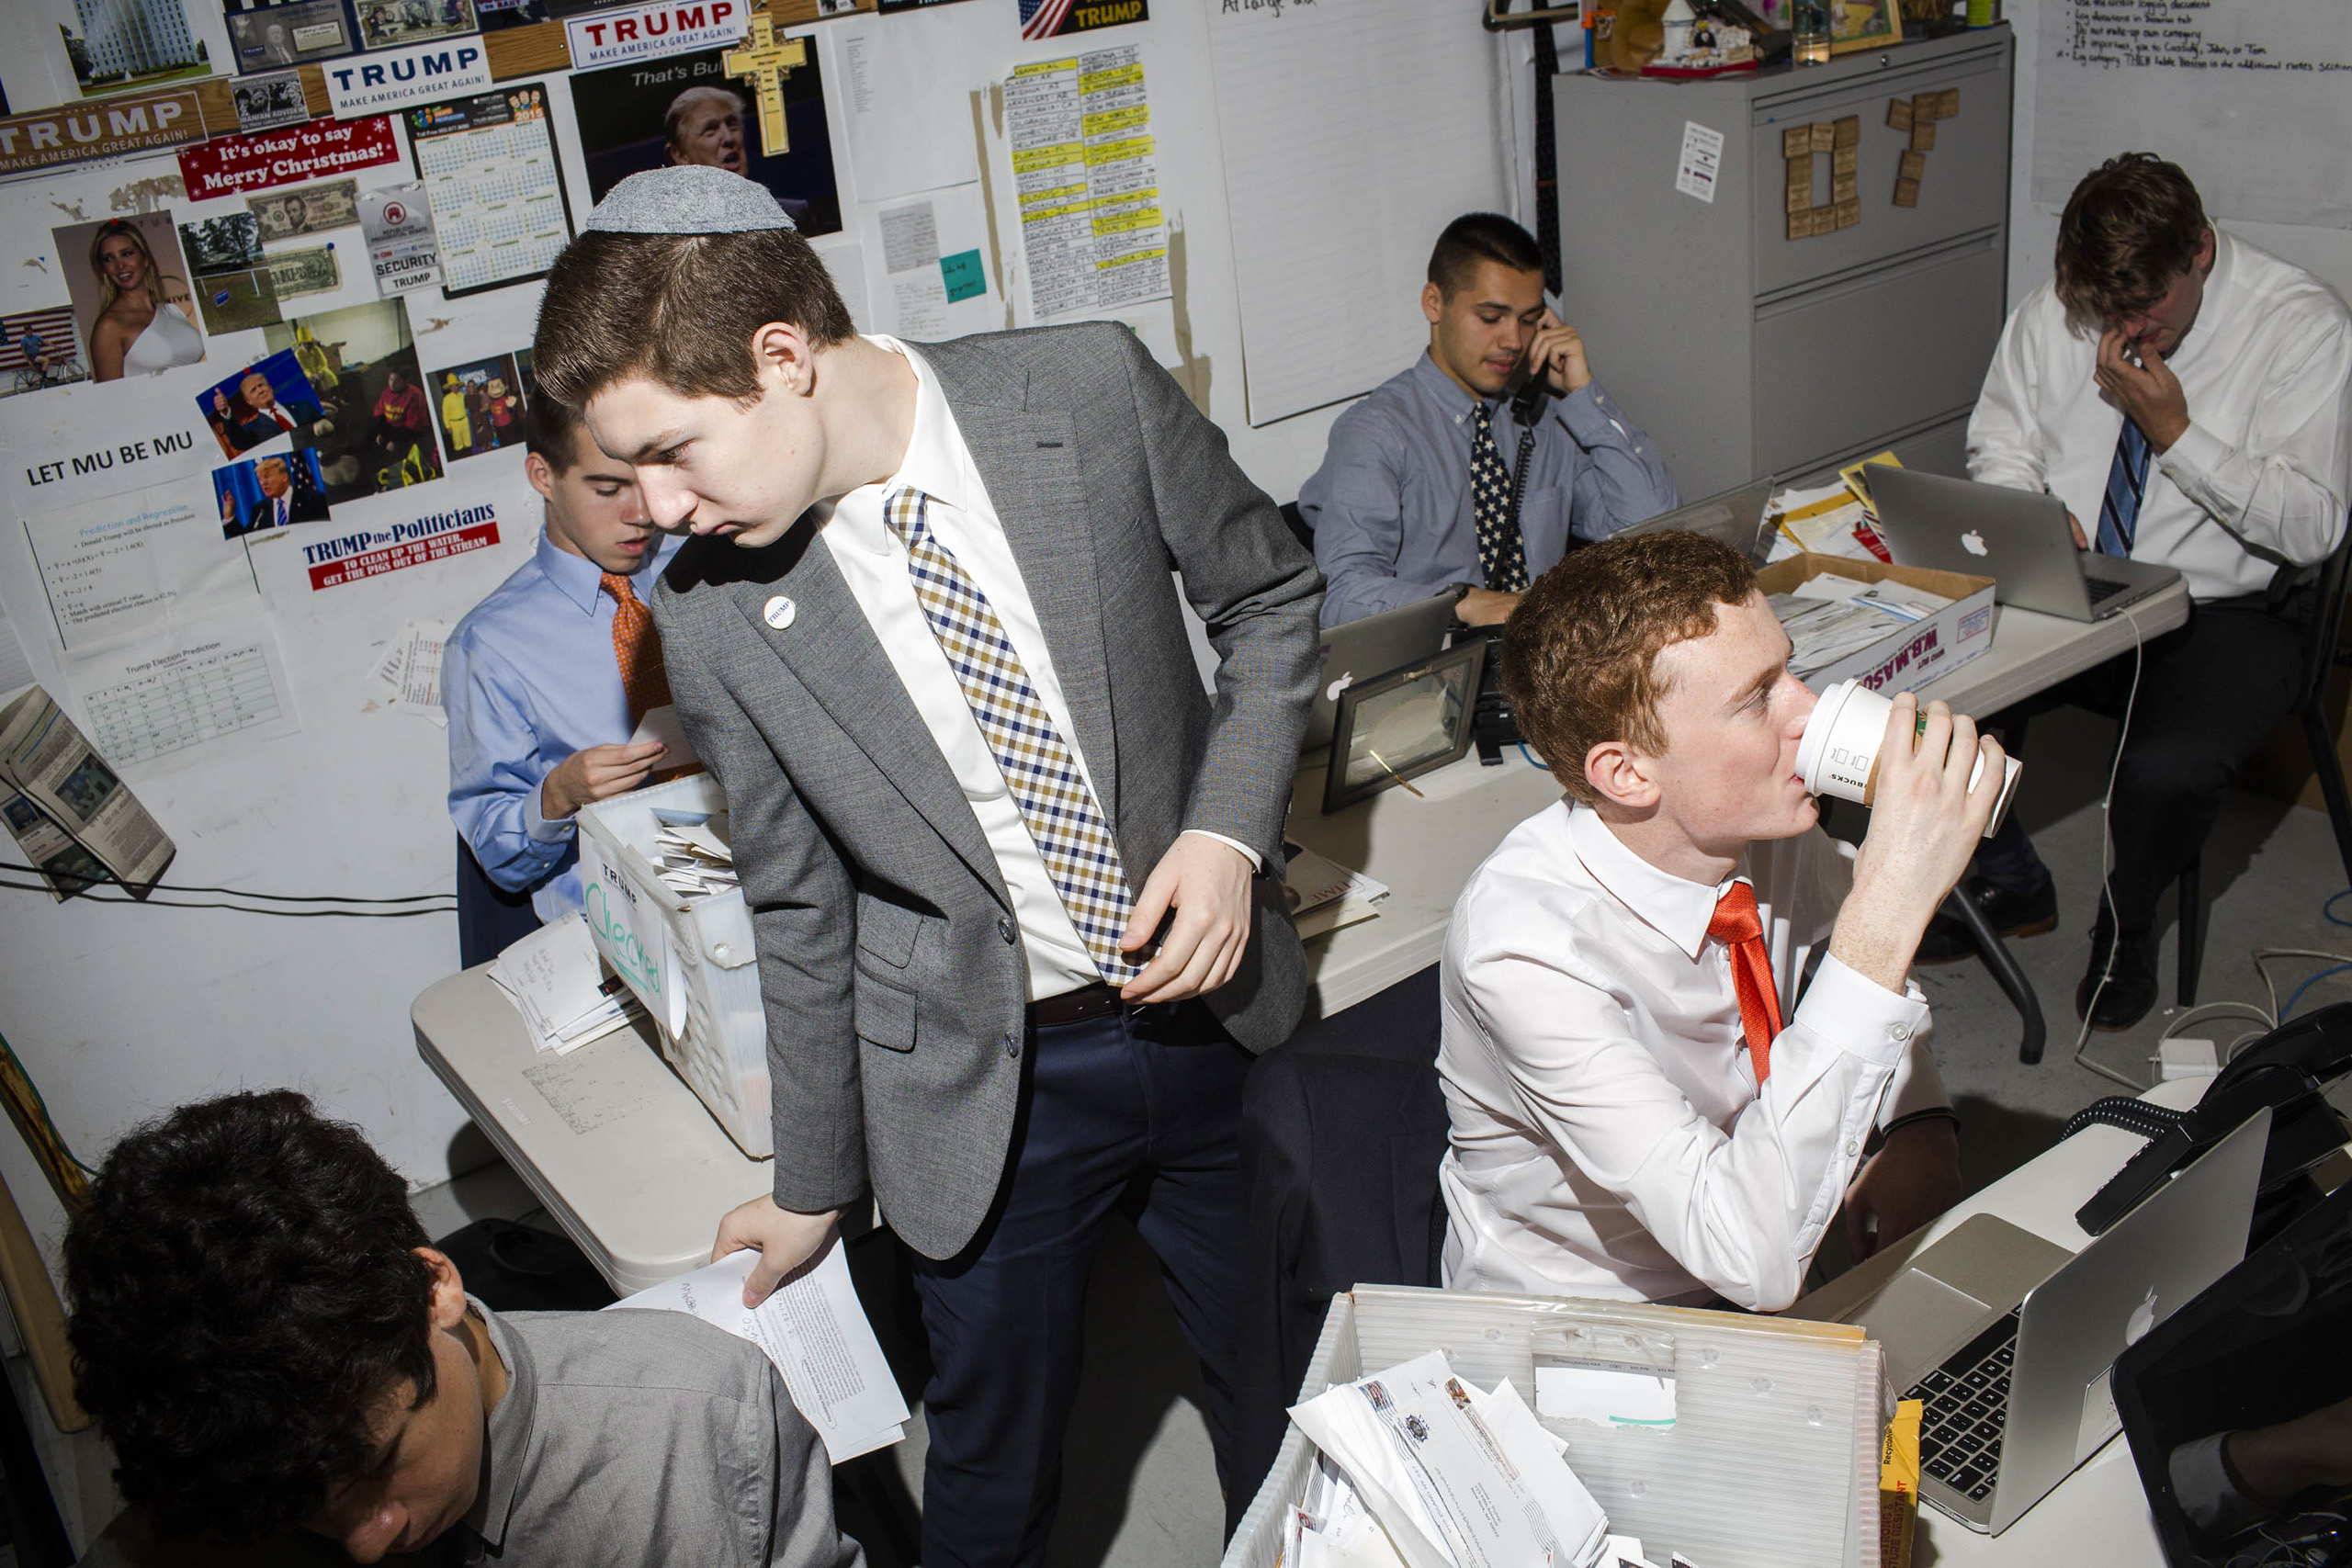 Young workers inside the campaign headquarters of Donald Trump on May 24, 2016, in Trump Tower in New York City.